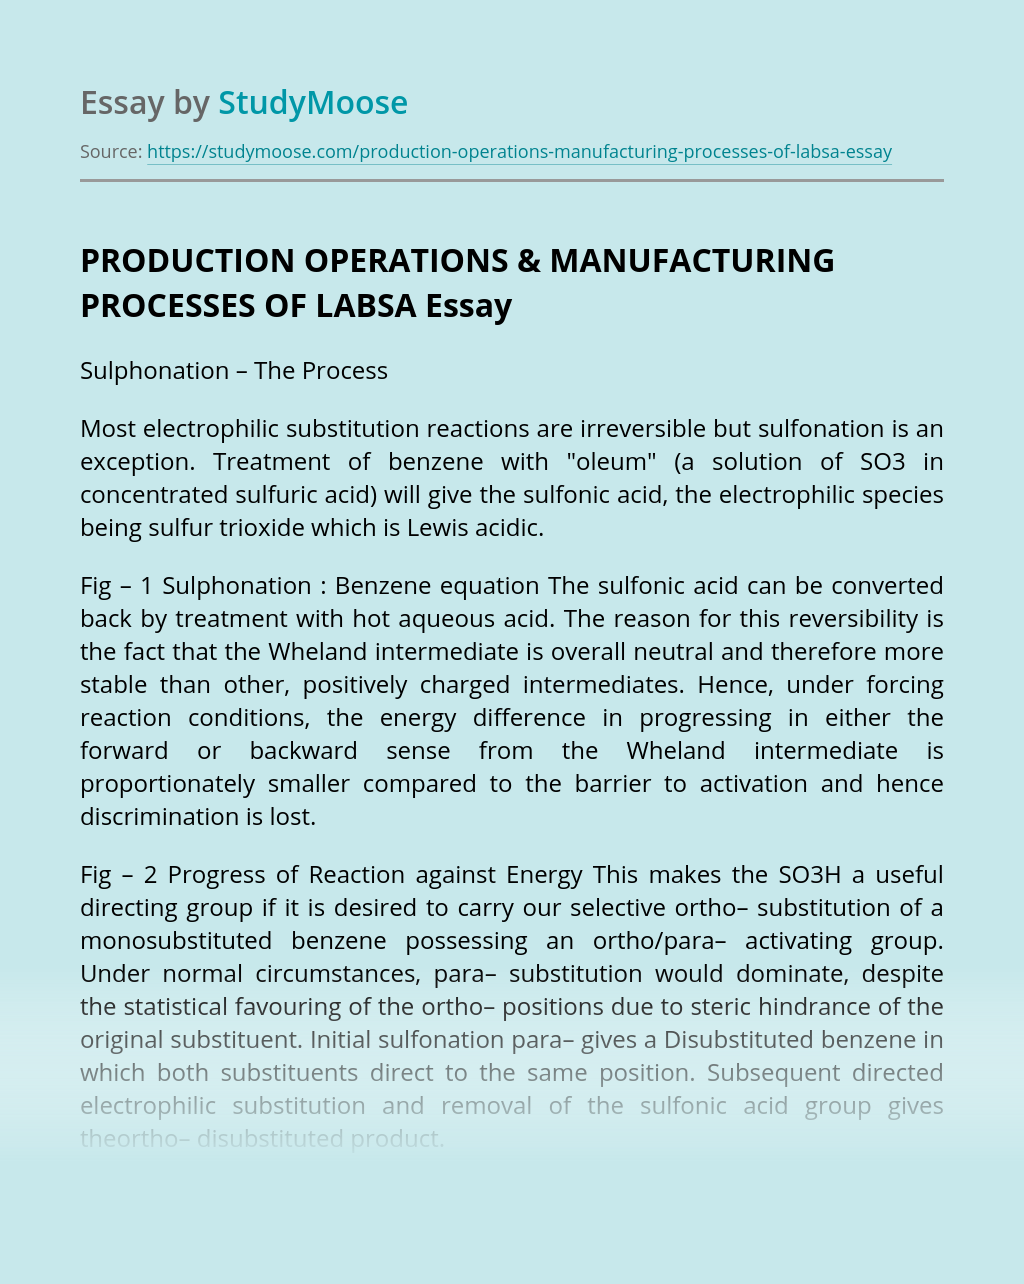 PRODUCTION OPERATIONS & MANUFACTURING PROCESSES OF LABSA